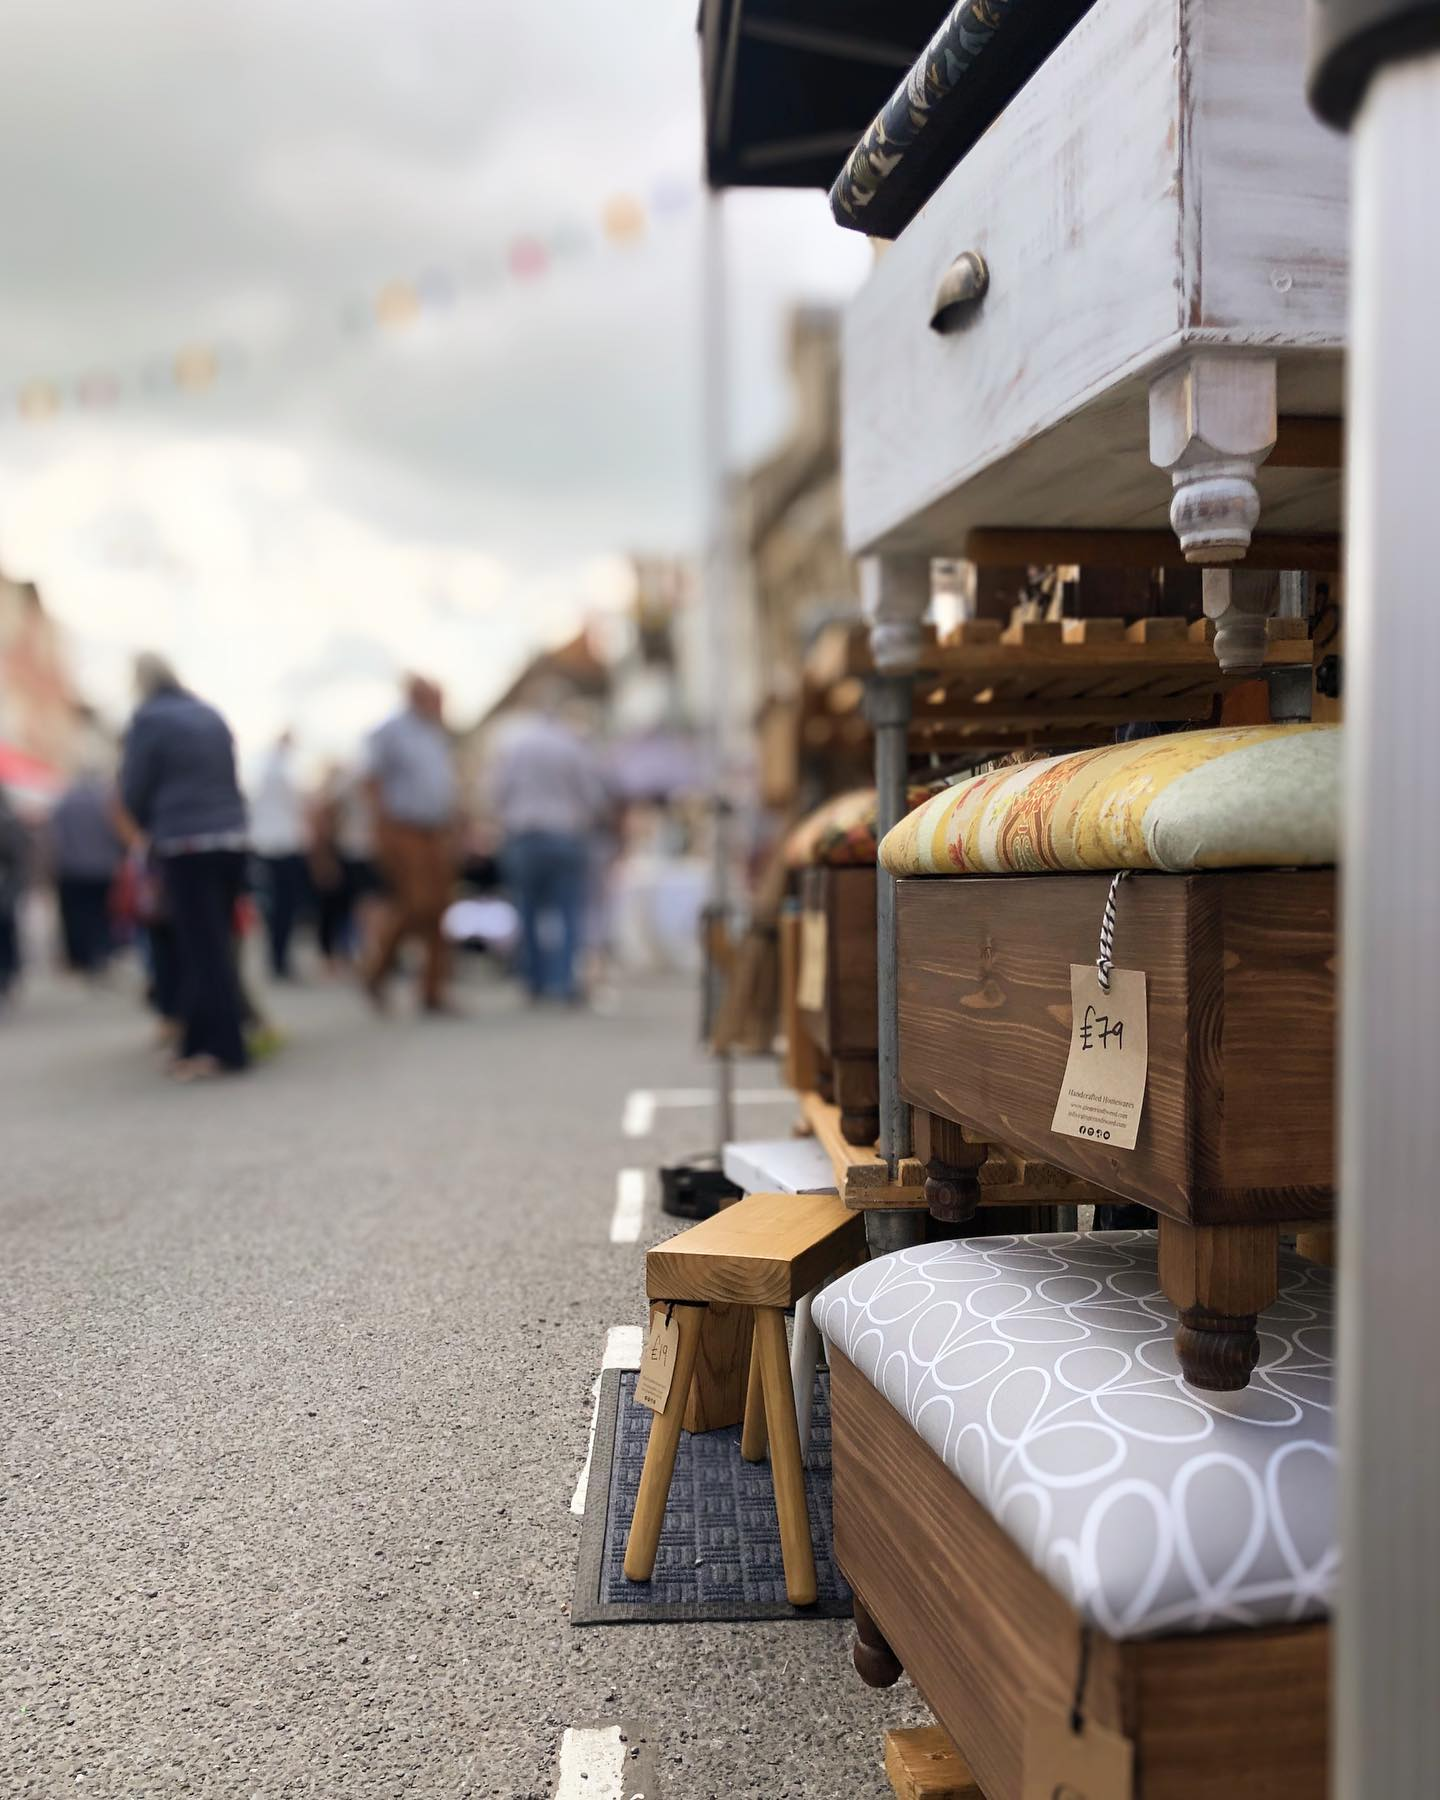 One hour left to visit today's Malmesbury street market. The sun is shining, there's live music and lots of lovely stalls to browse. .#livemusic #community #shoplocal